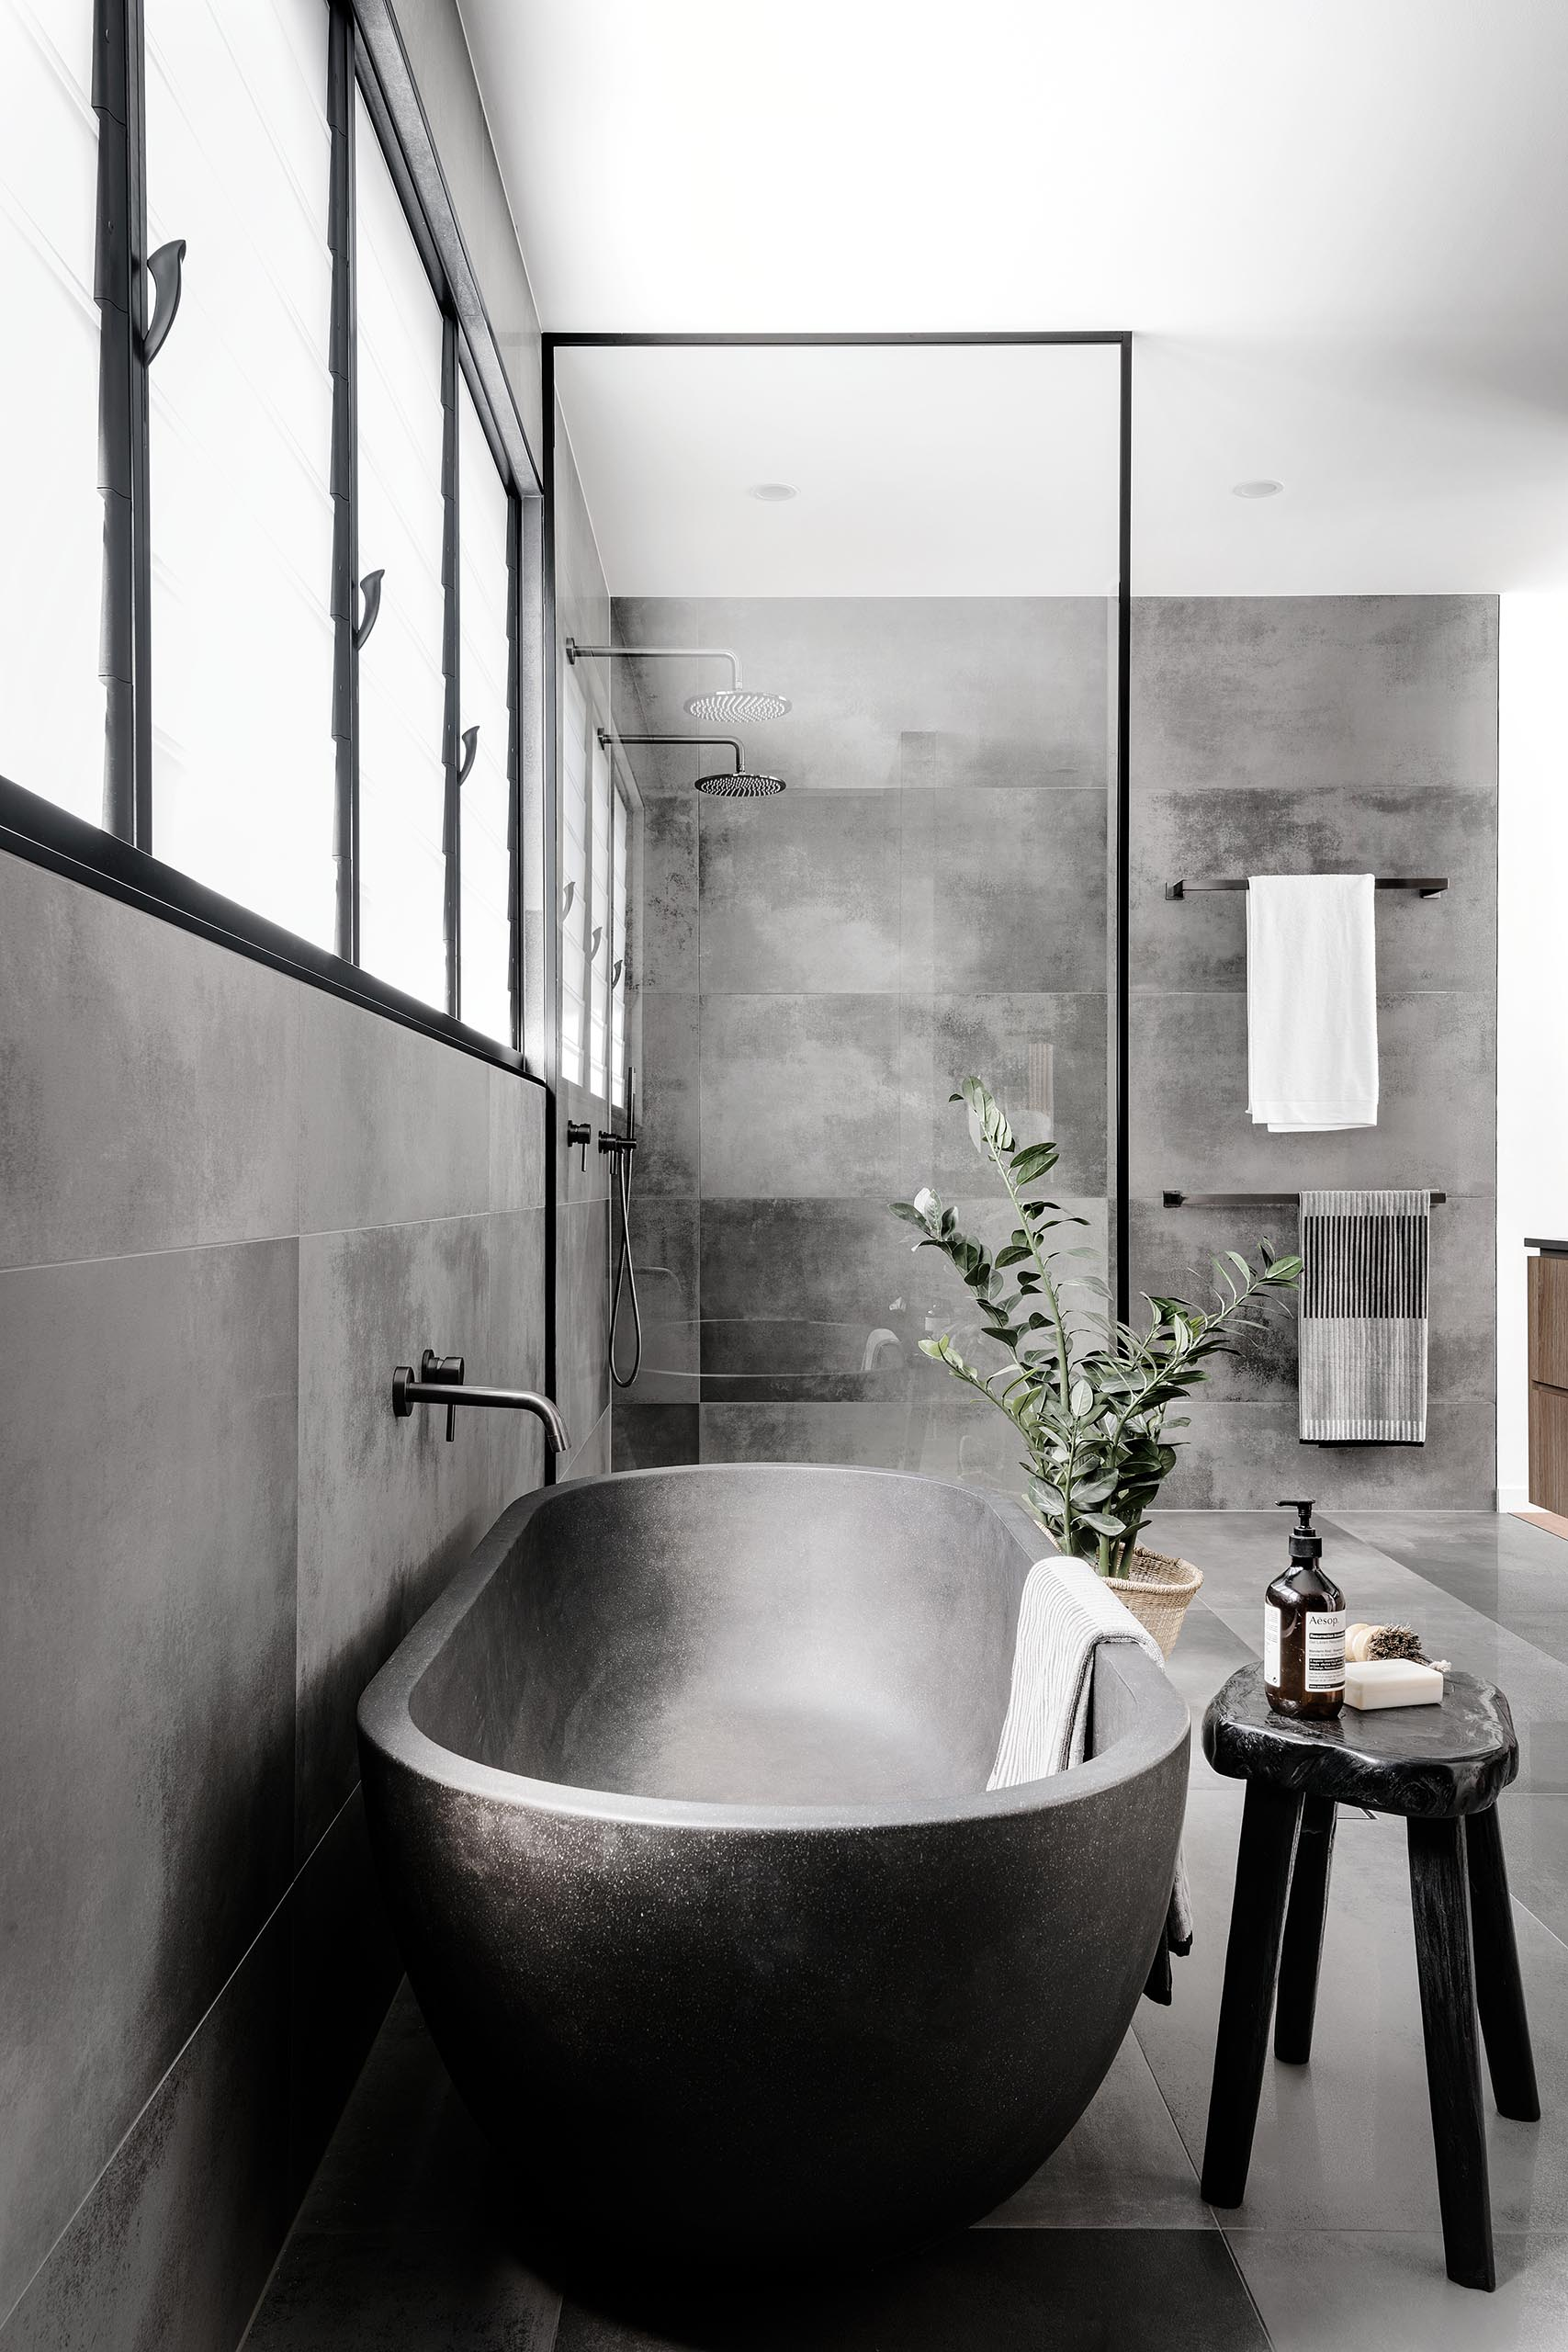 A modern master bathroom with large format grey tiles, a  grey freestanding bathtub, and a black framed glass shower screen.